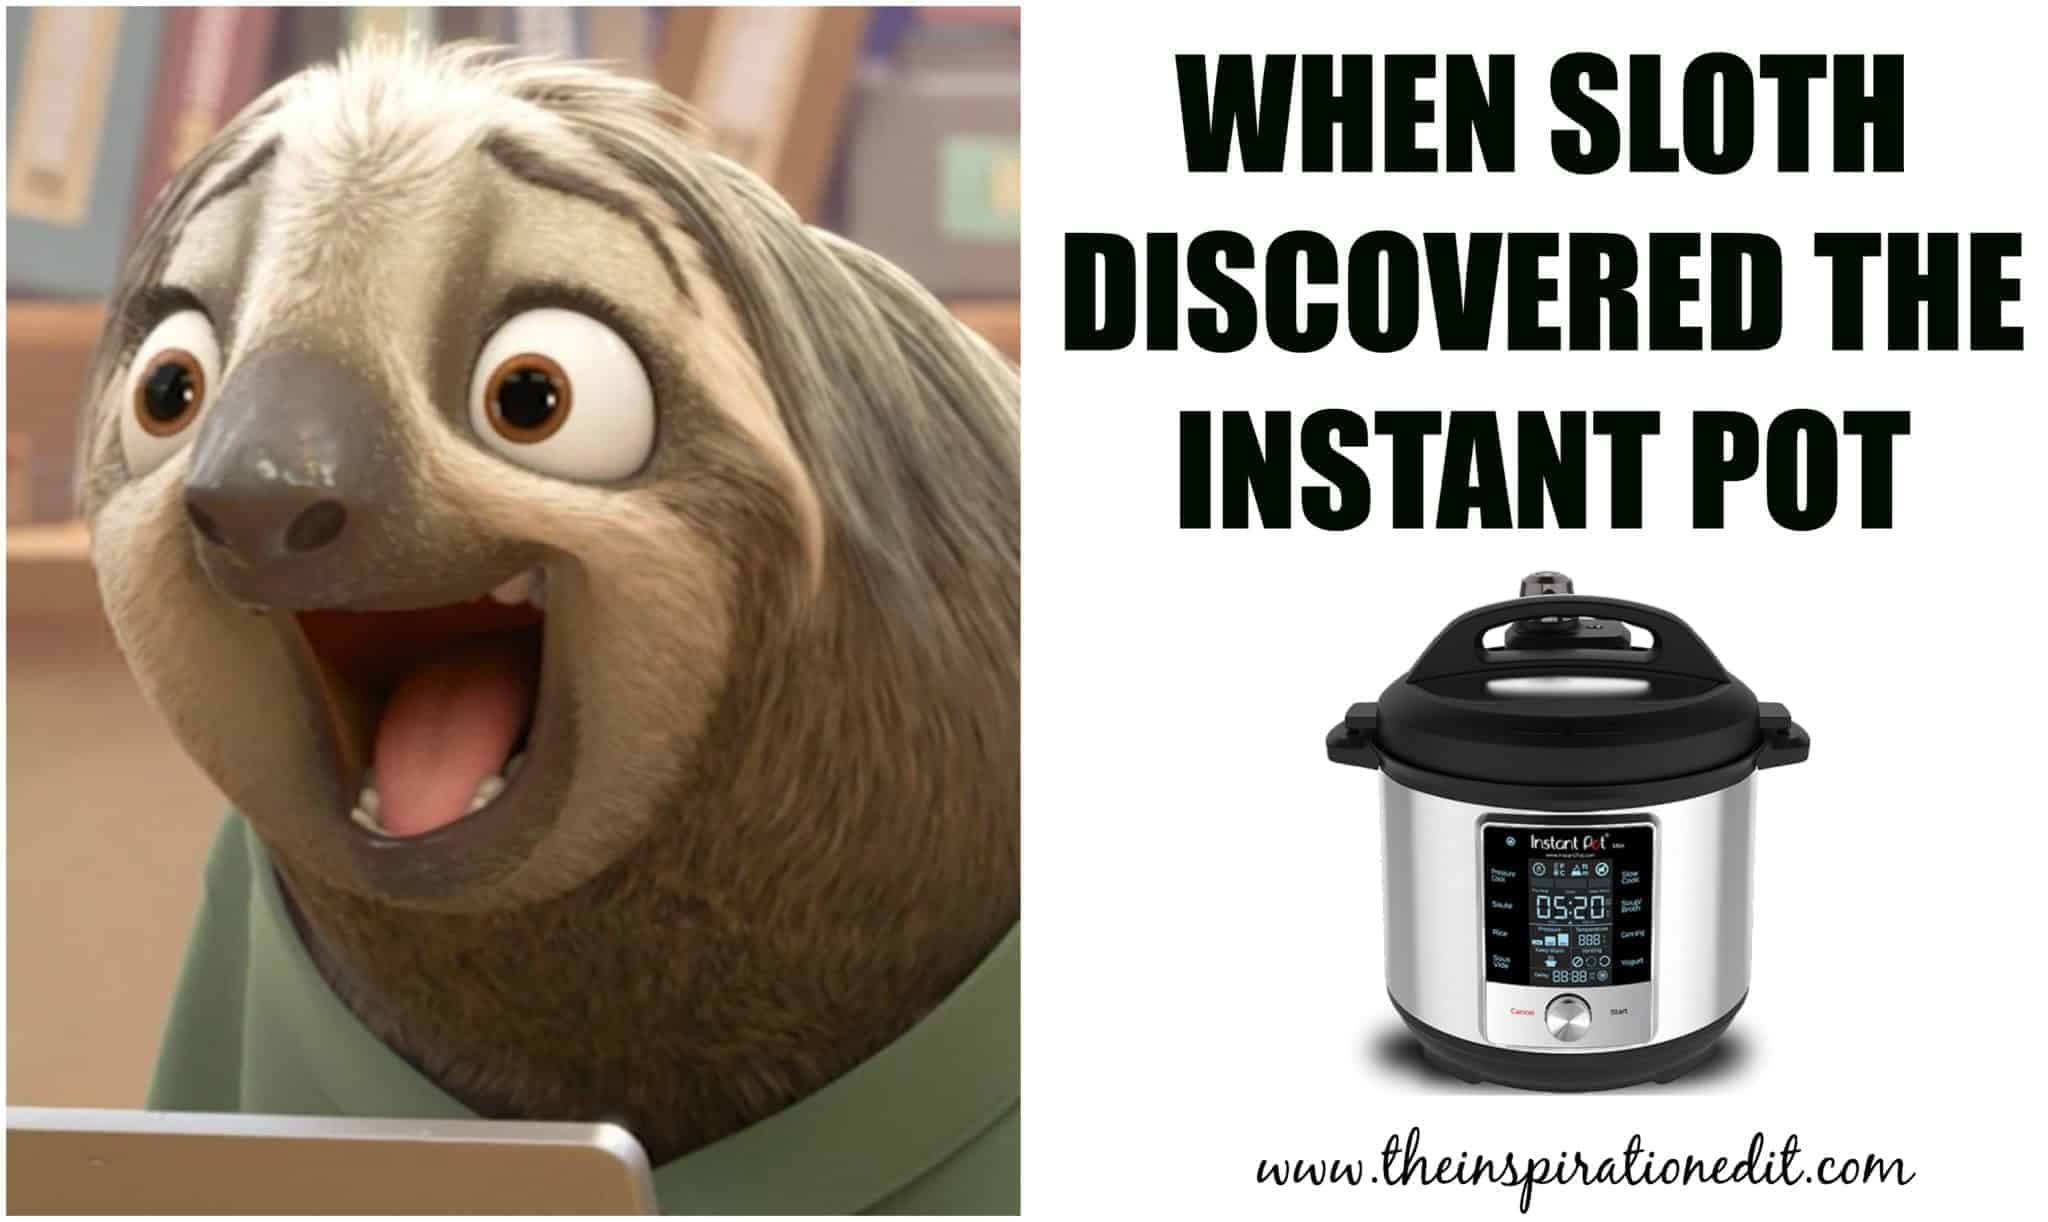 when sloth discovered the instant pot